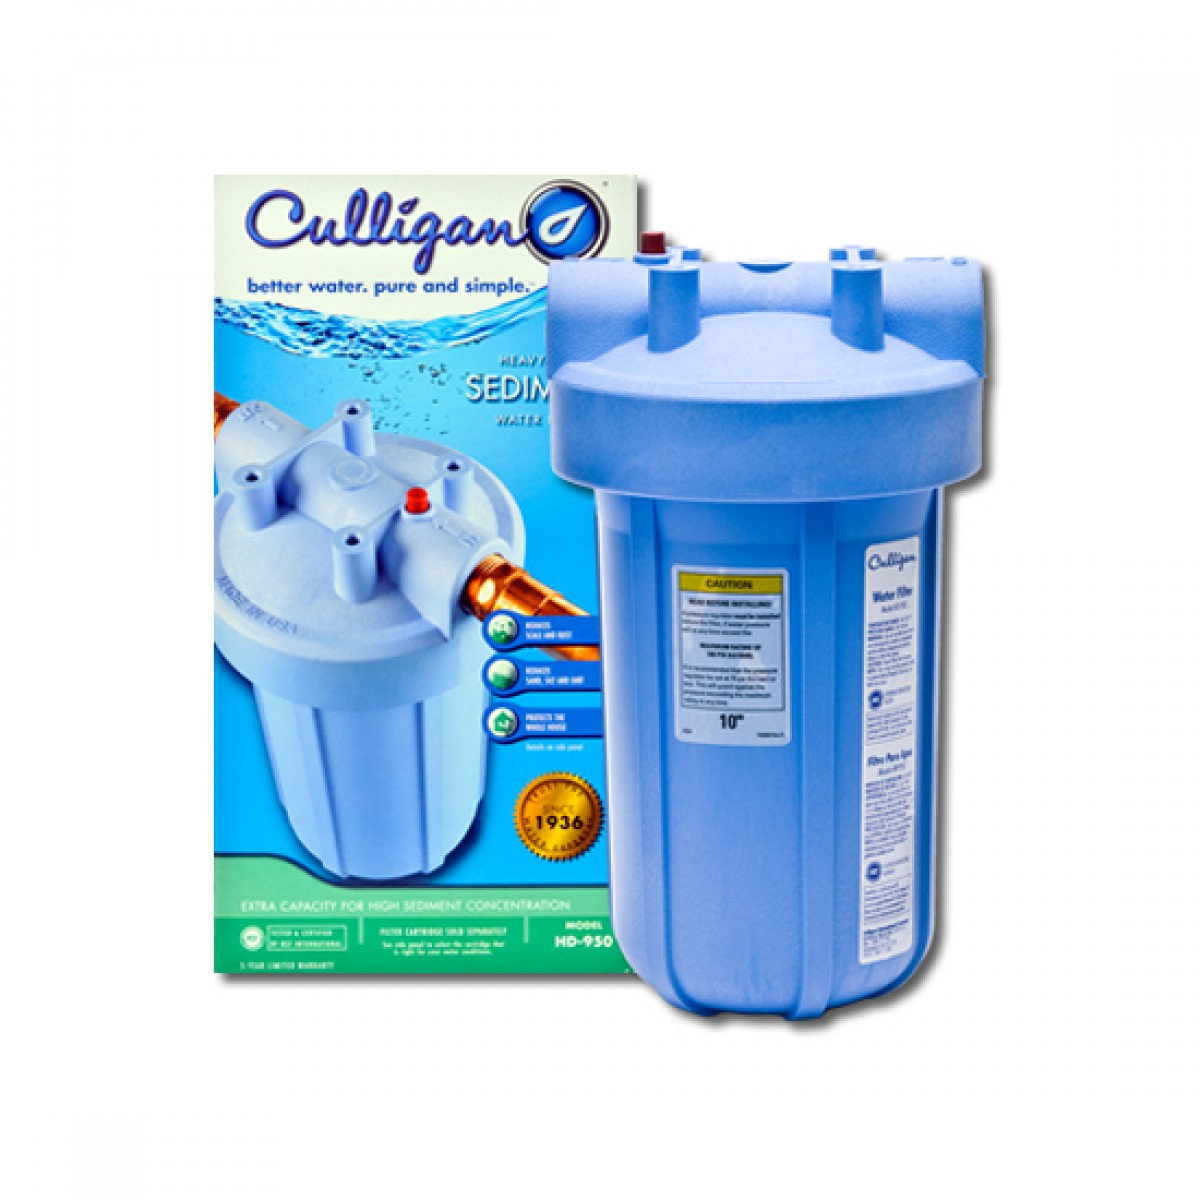 hd950 culligan whole house water filter system - Whole House Water Filtration System